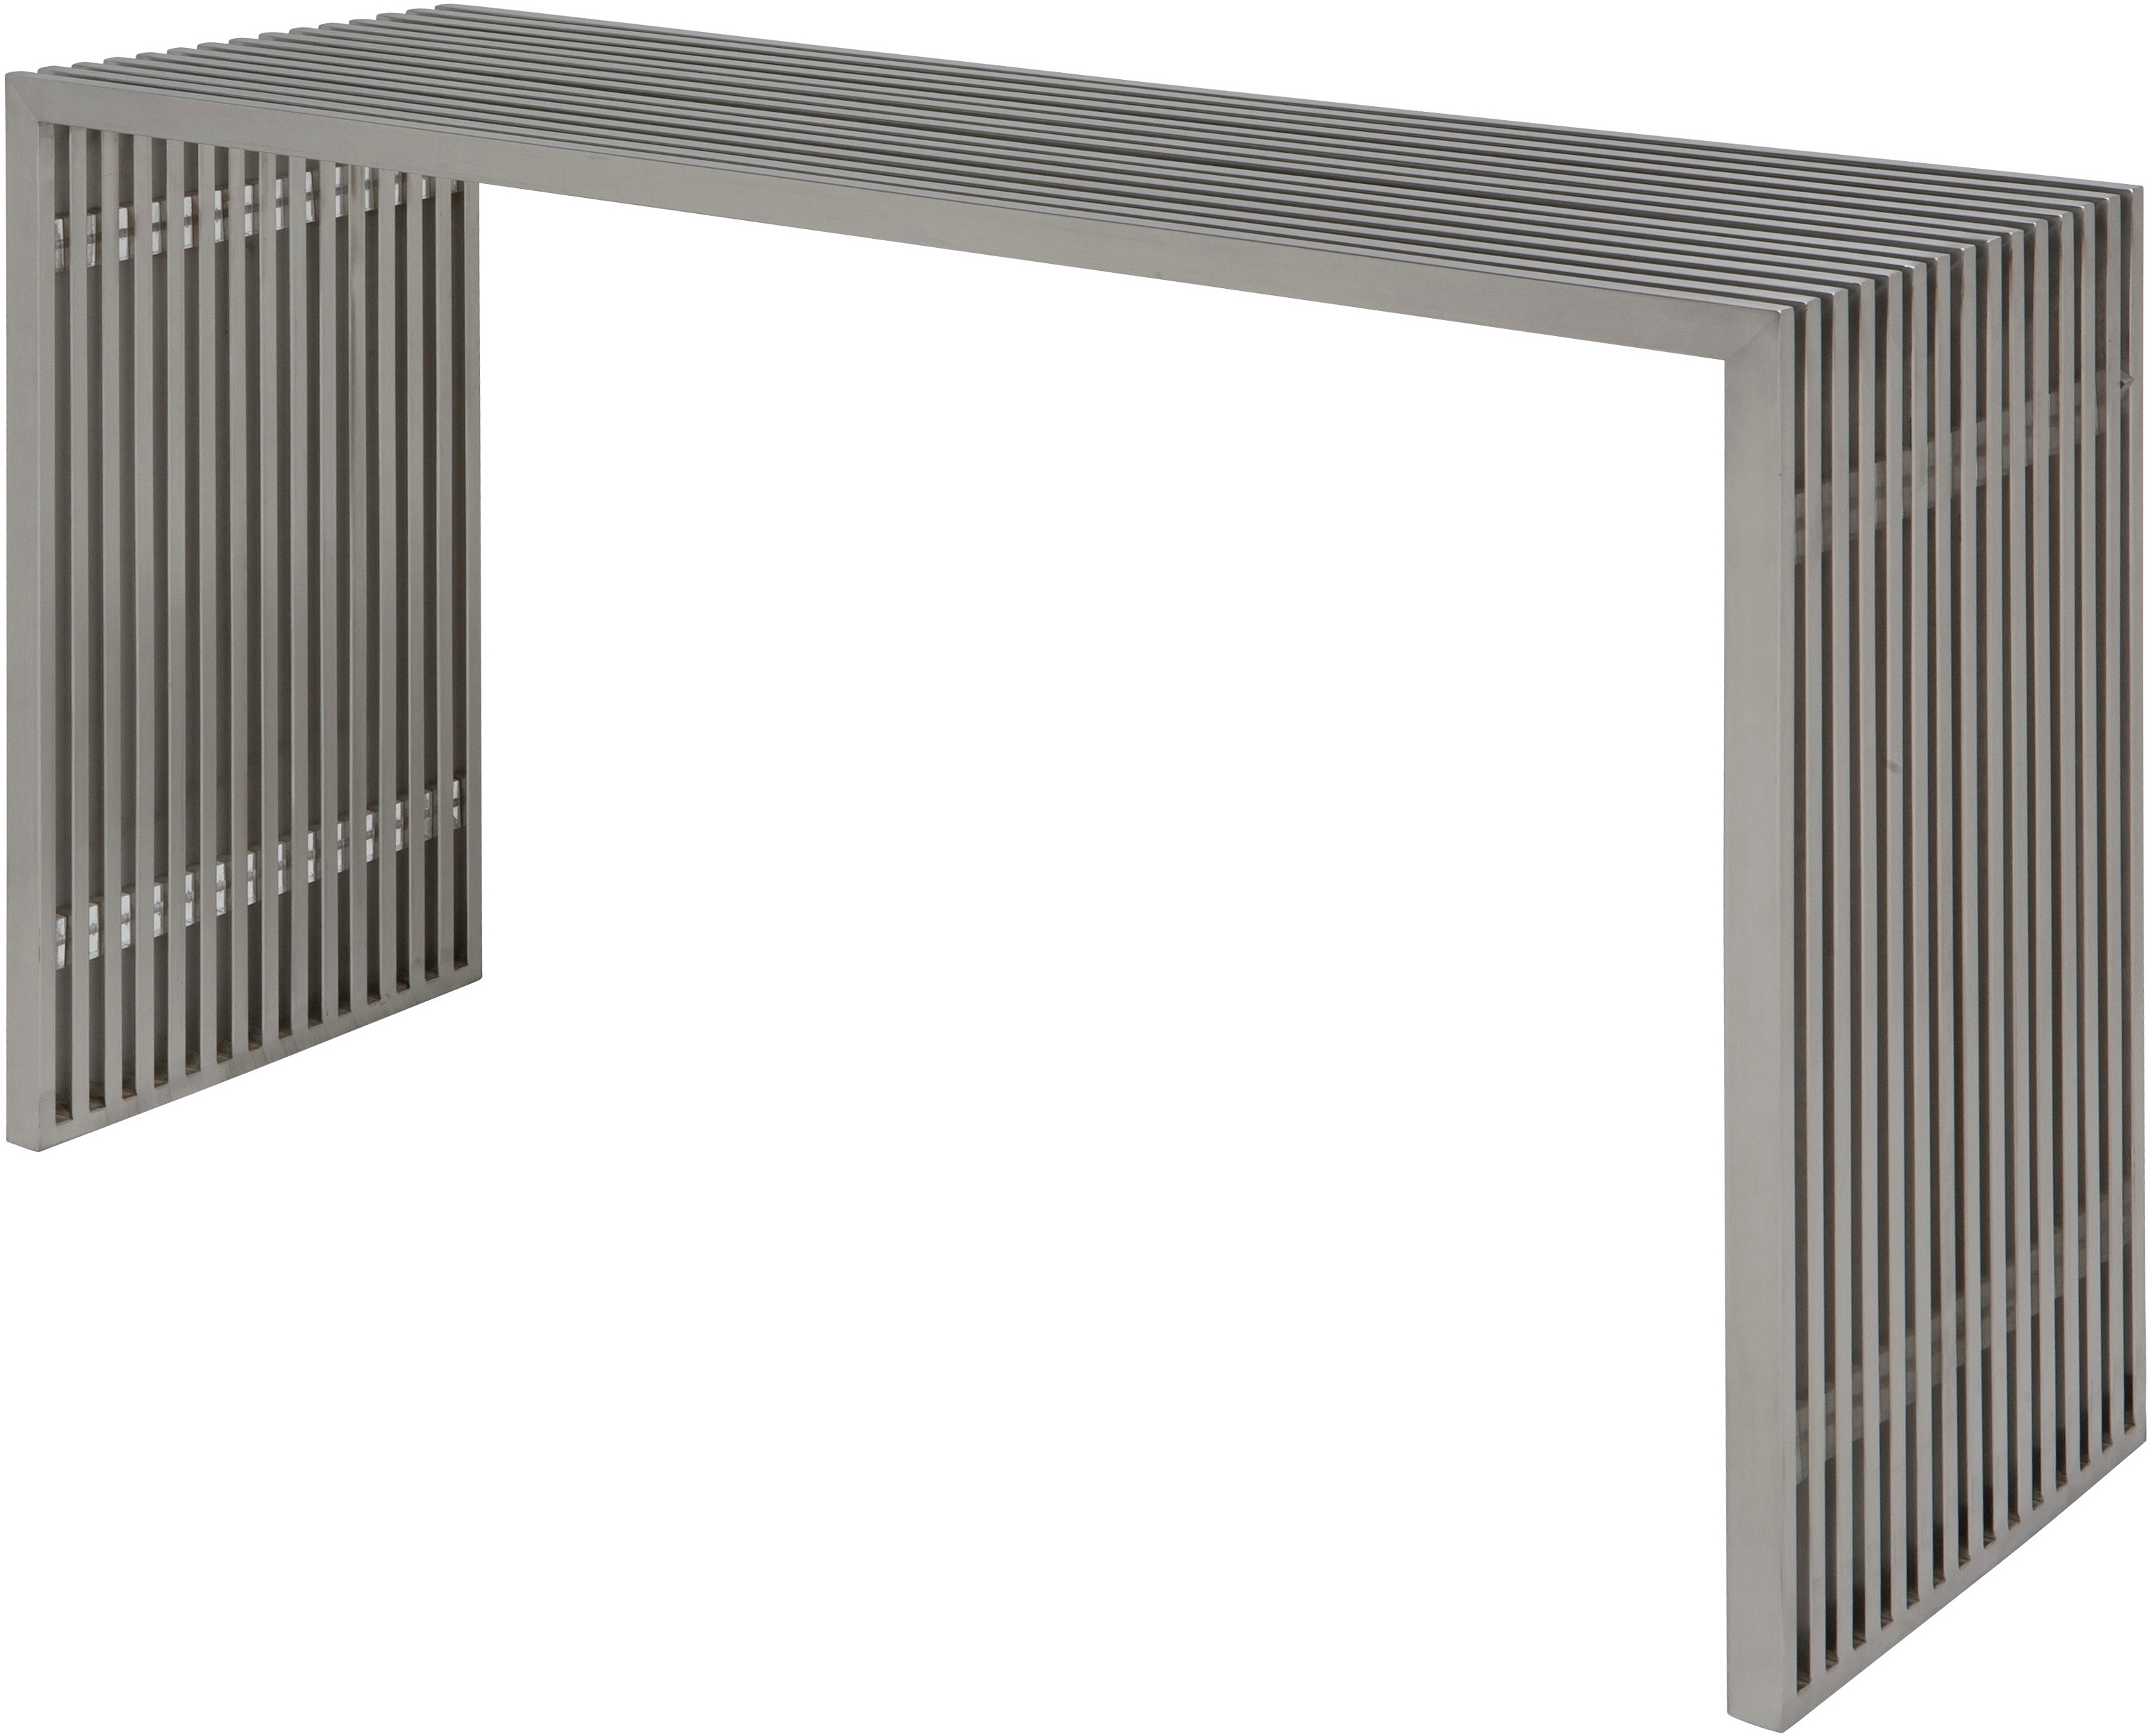 the nuevo amici console table in brushed stainless steel